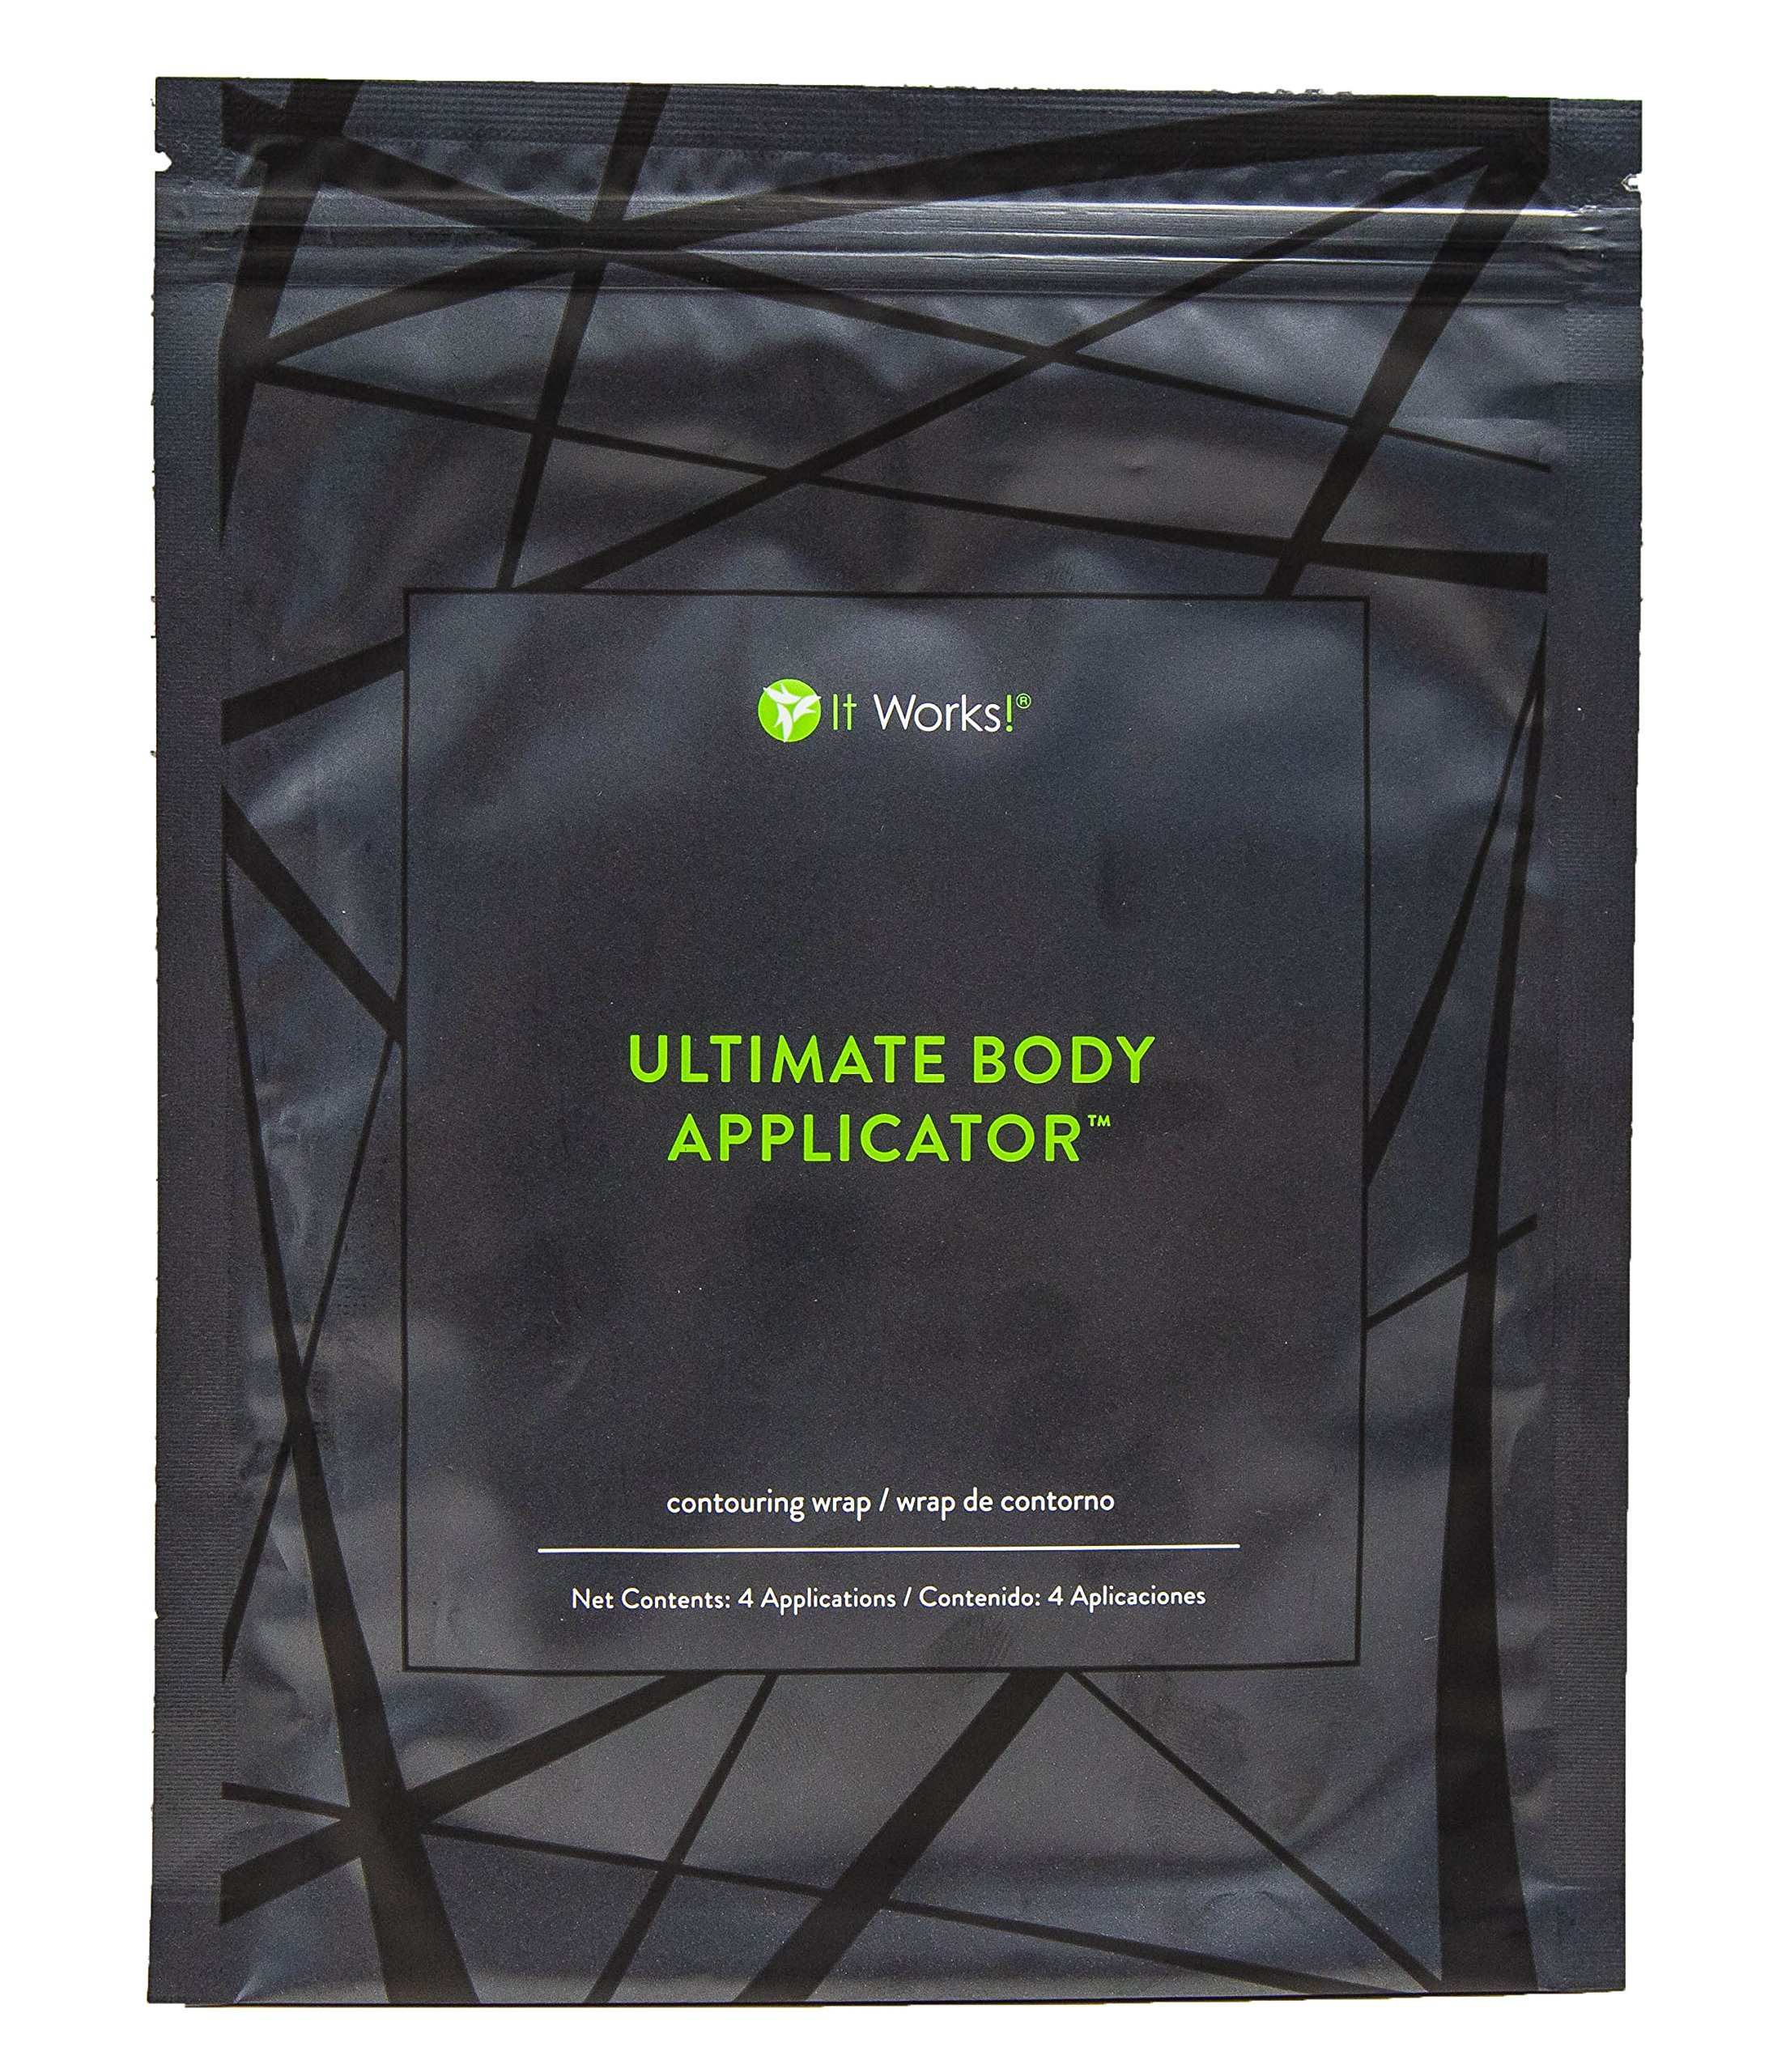 It Works Ultimate Body Applicator - 4 Wraps by It Works